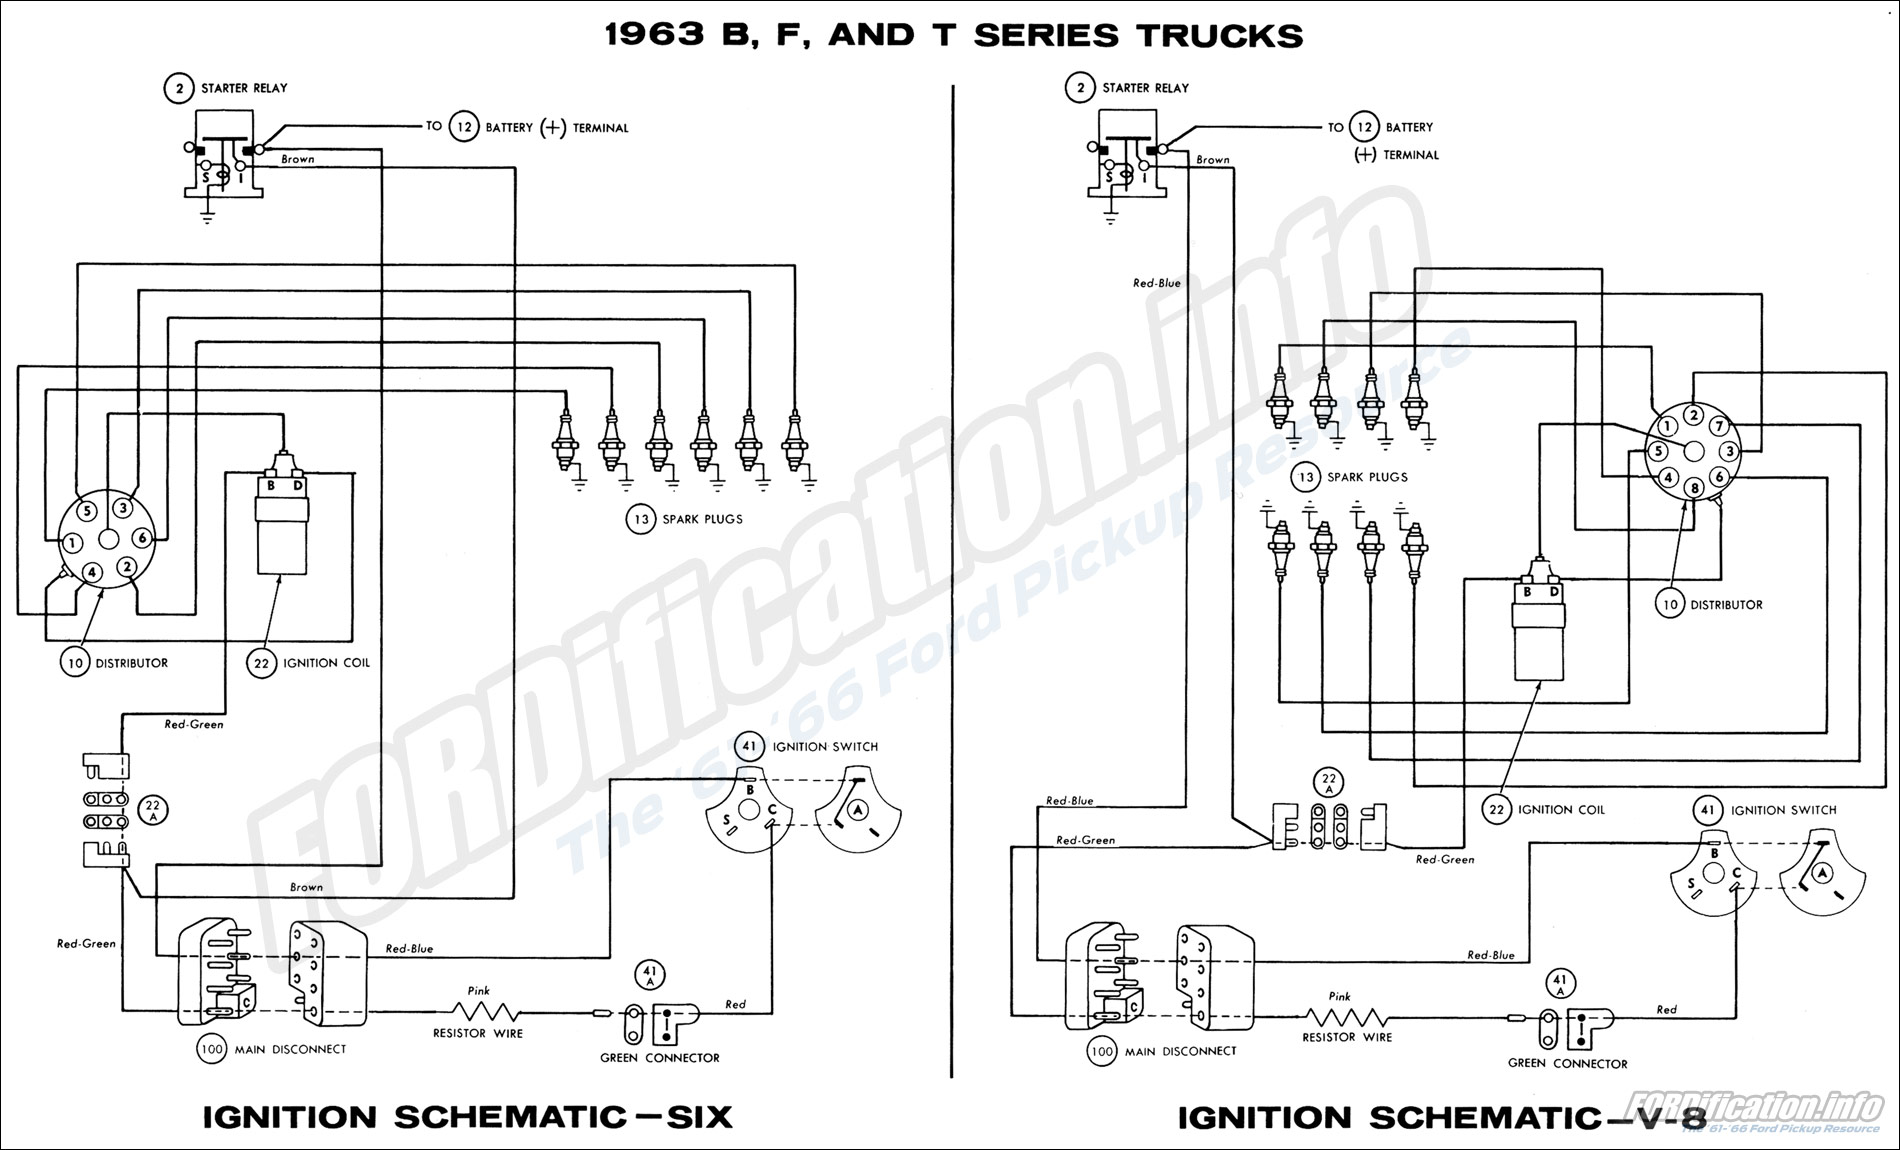 1963 ford f100 wiring diagram home telephone uk truck diagrams fordification info the